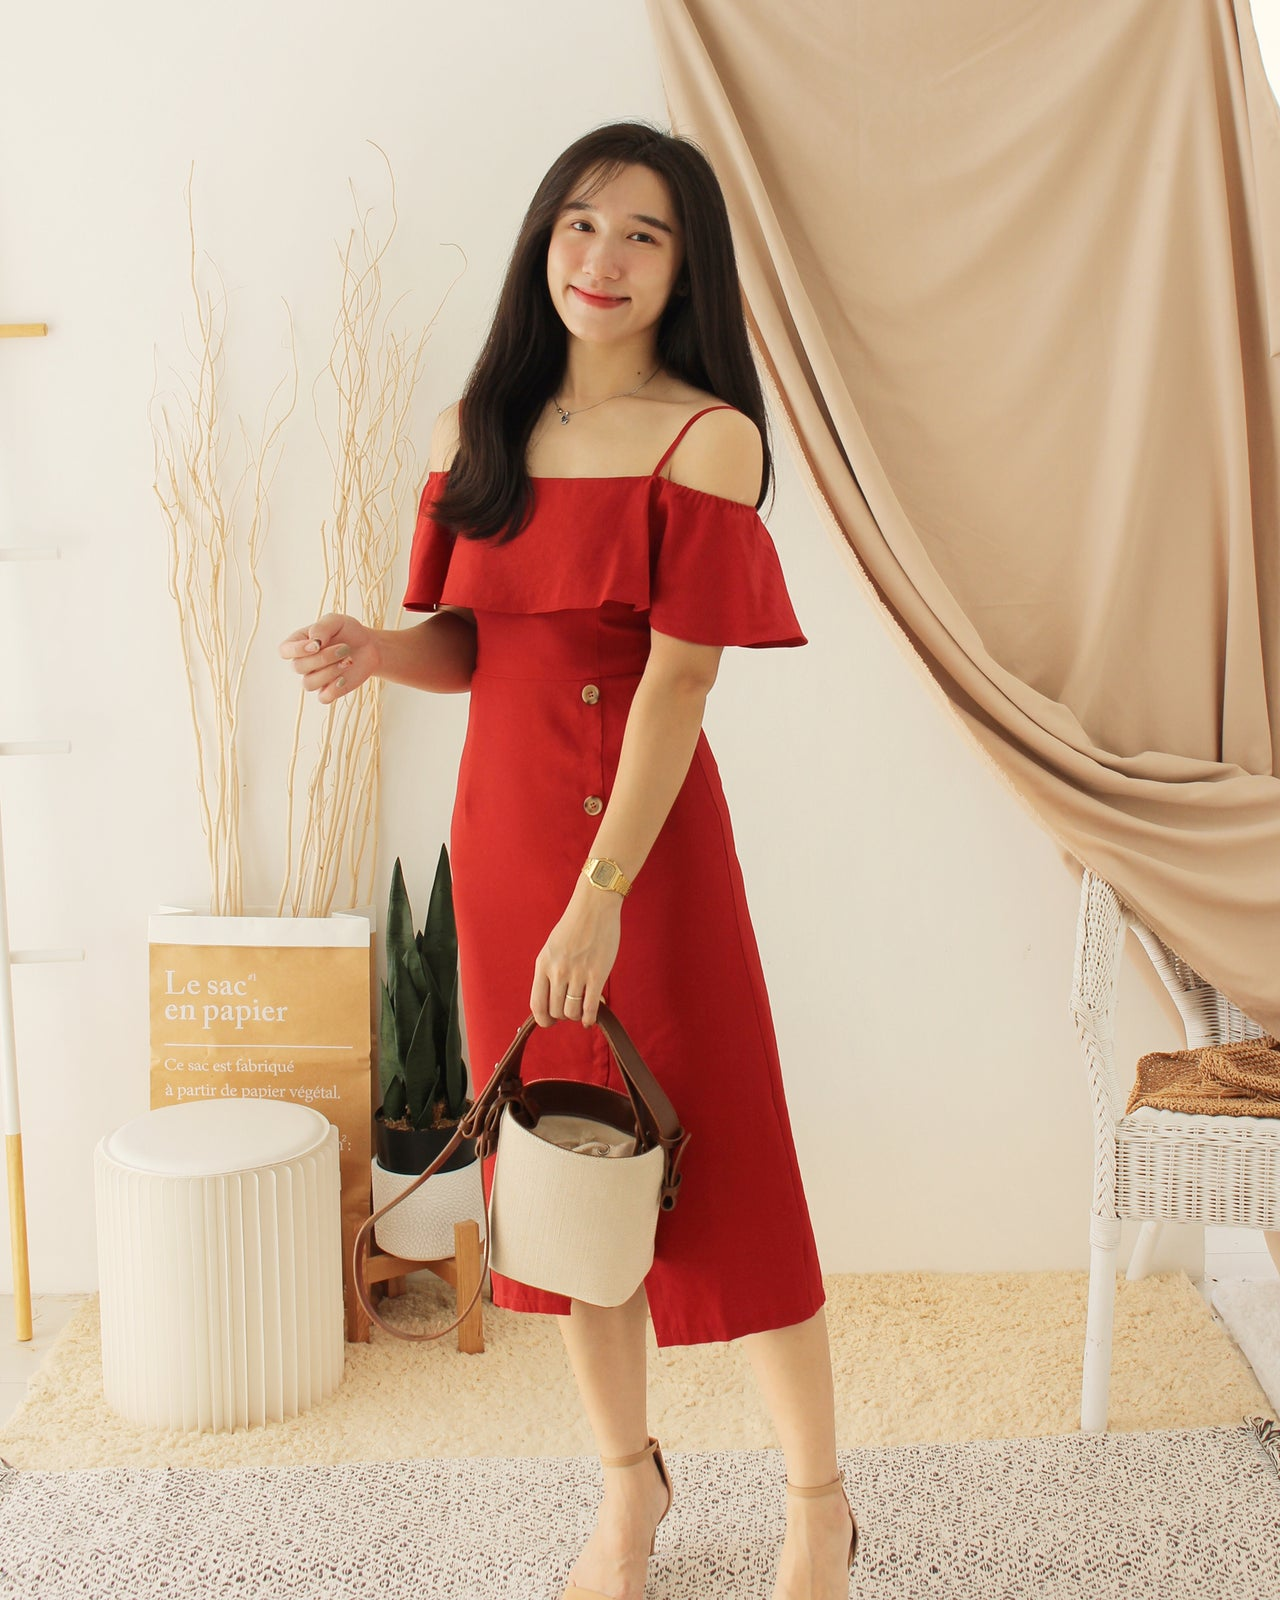 ELOWEN Ruffle Dress